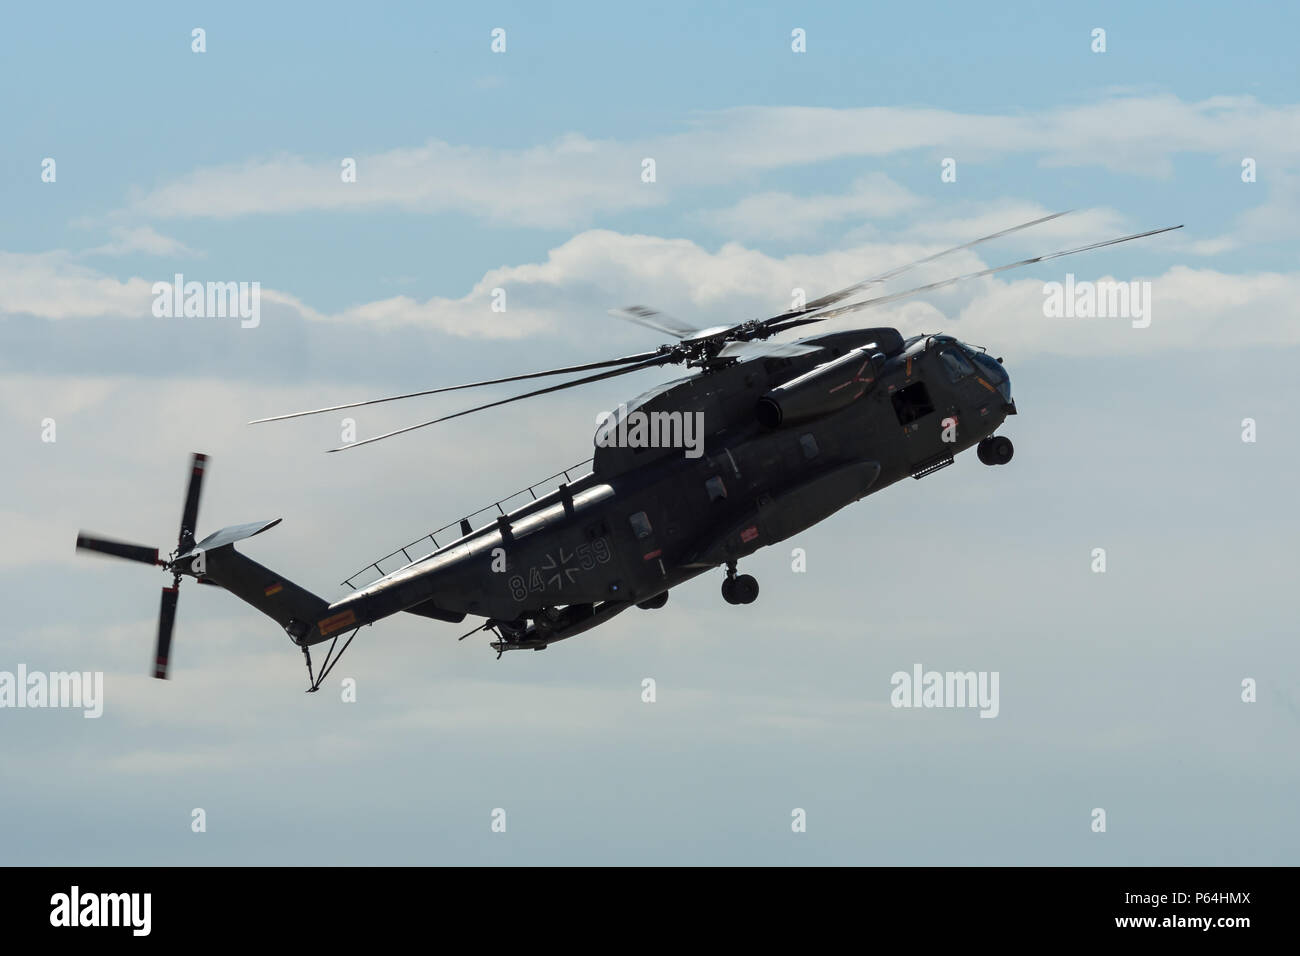 Demonstration flight of the medium utility military helicopter NHIndustries NH90. German Army. Exhibition ILA Berlin Air Show 2018. - Stock Image